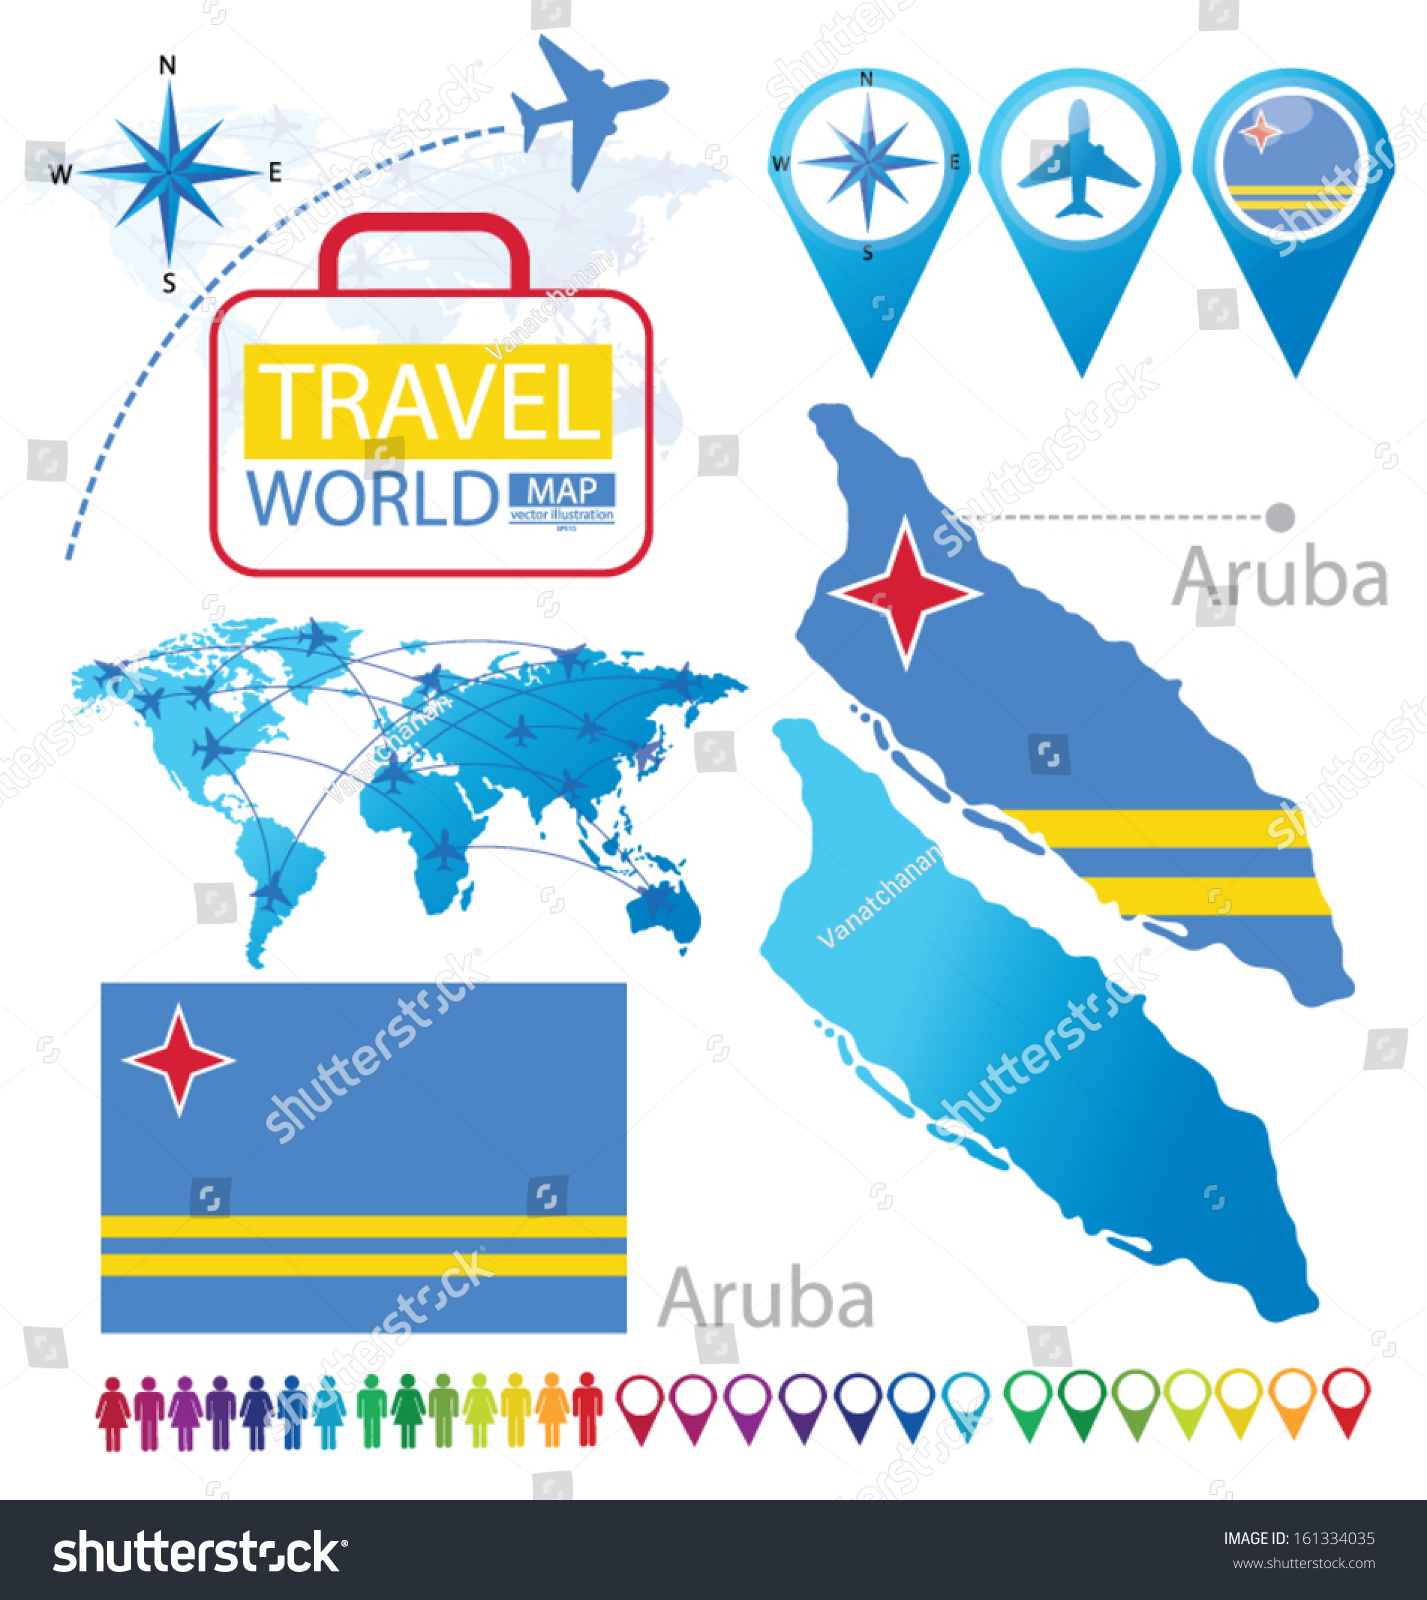 Picture of: Aruba Flag World Map Travel Vector Stock Vector Royalty Free 161334035